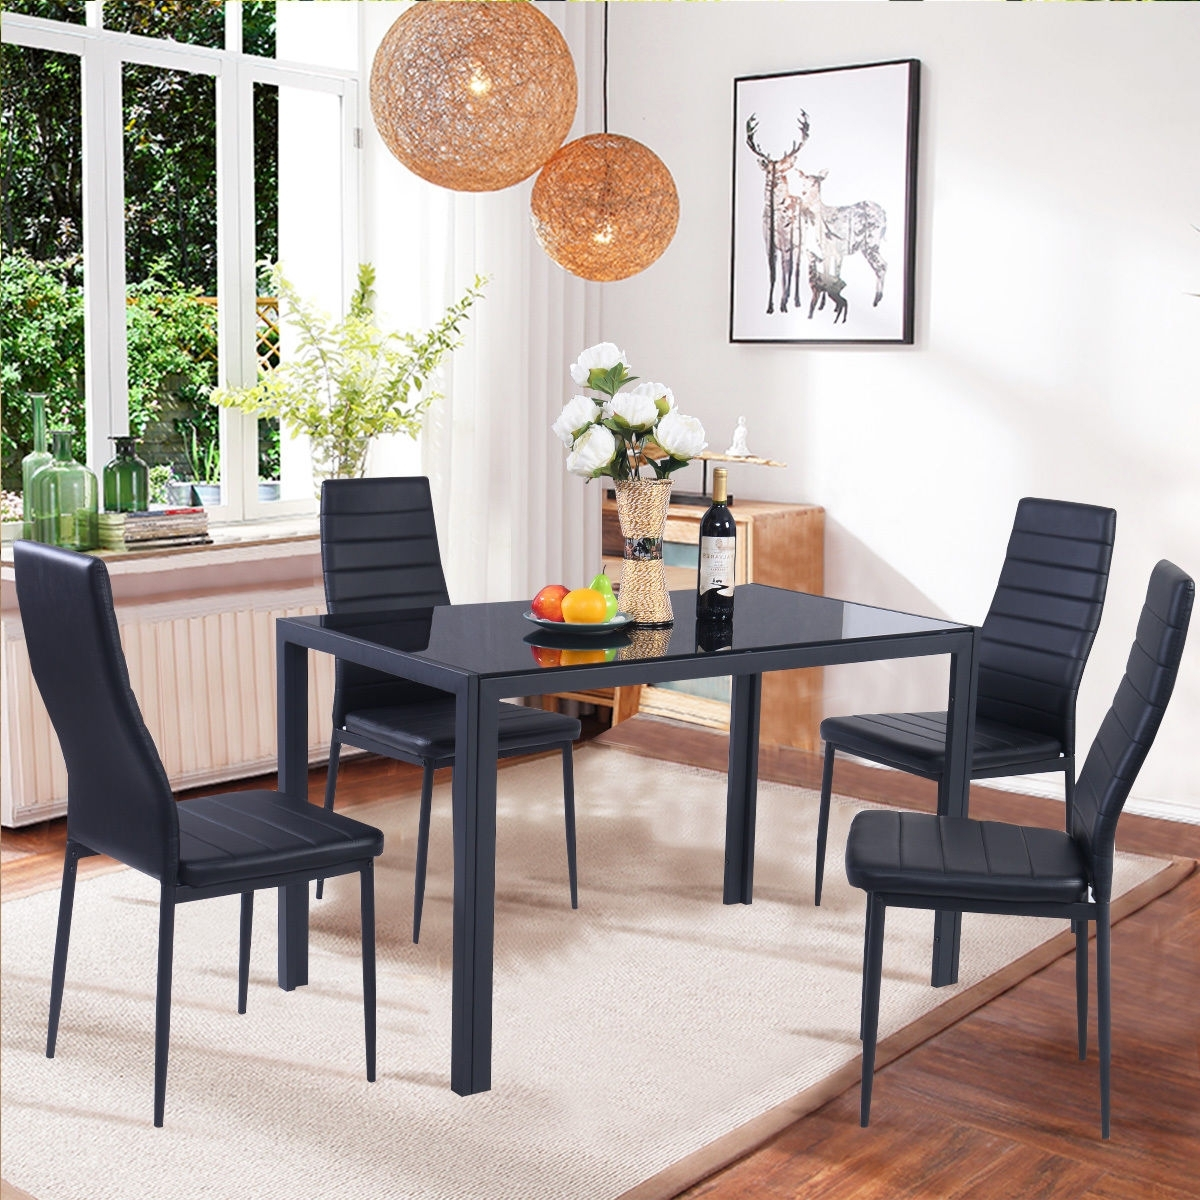 Most Current Cheap Glass Dining Tables And 4 Chairs Within Costway 5 Piece Kitchen Dining Set Glass Metal Table And 4 Chairs (Gallery 2 of 25)